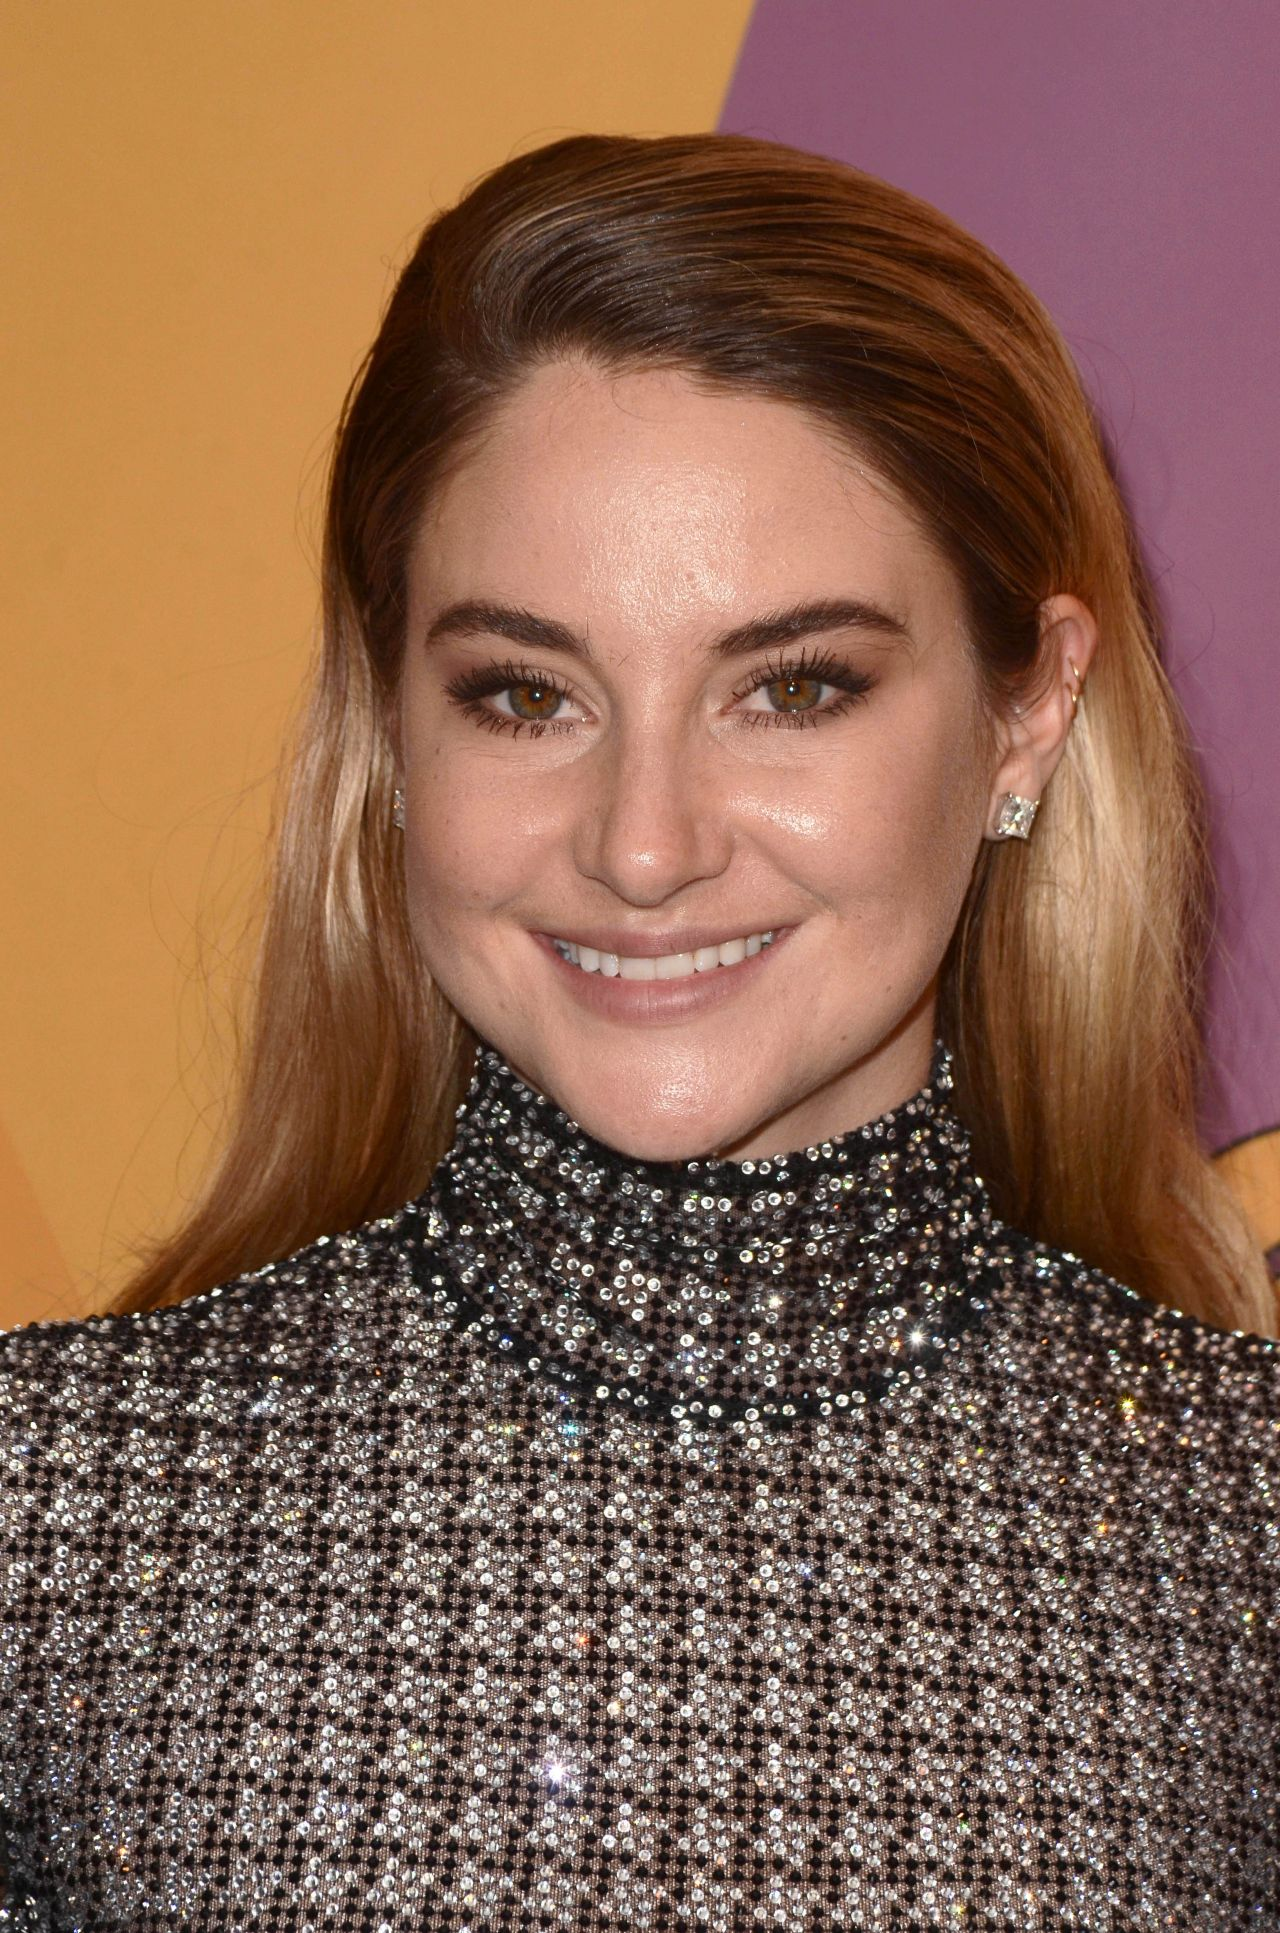 Who is shailene woodley dating in 2018